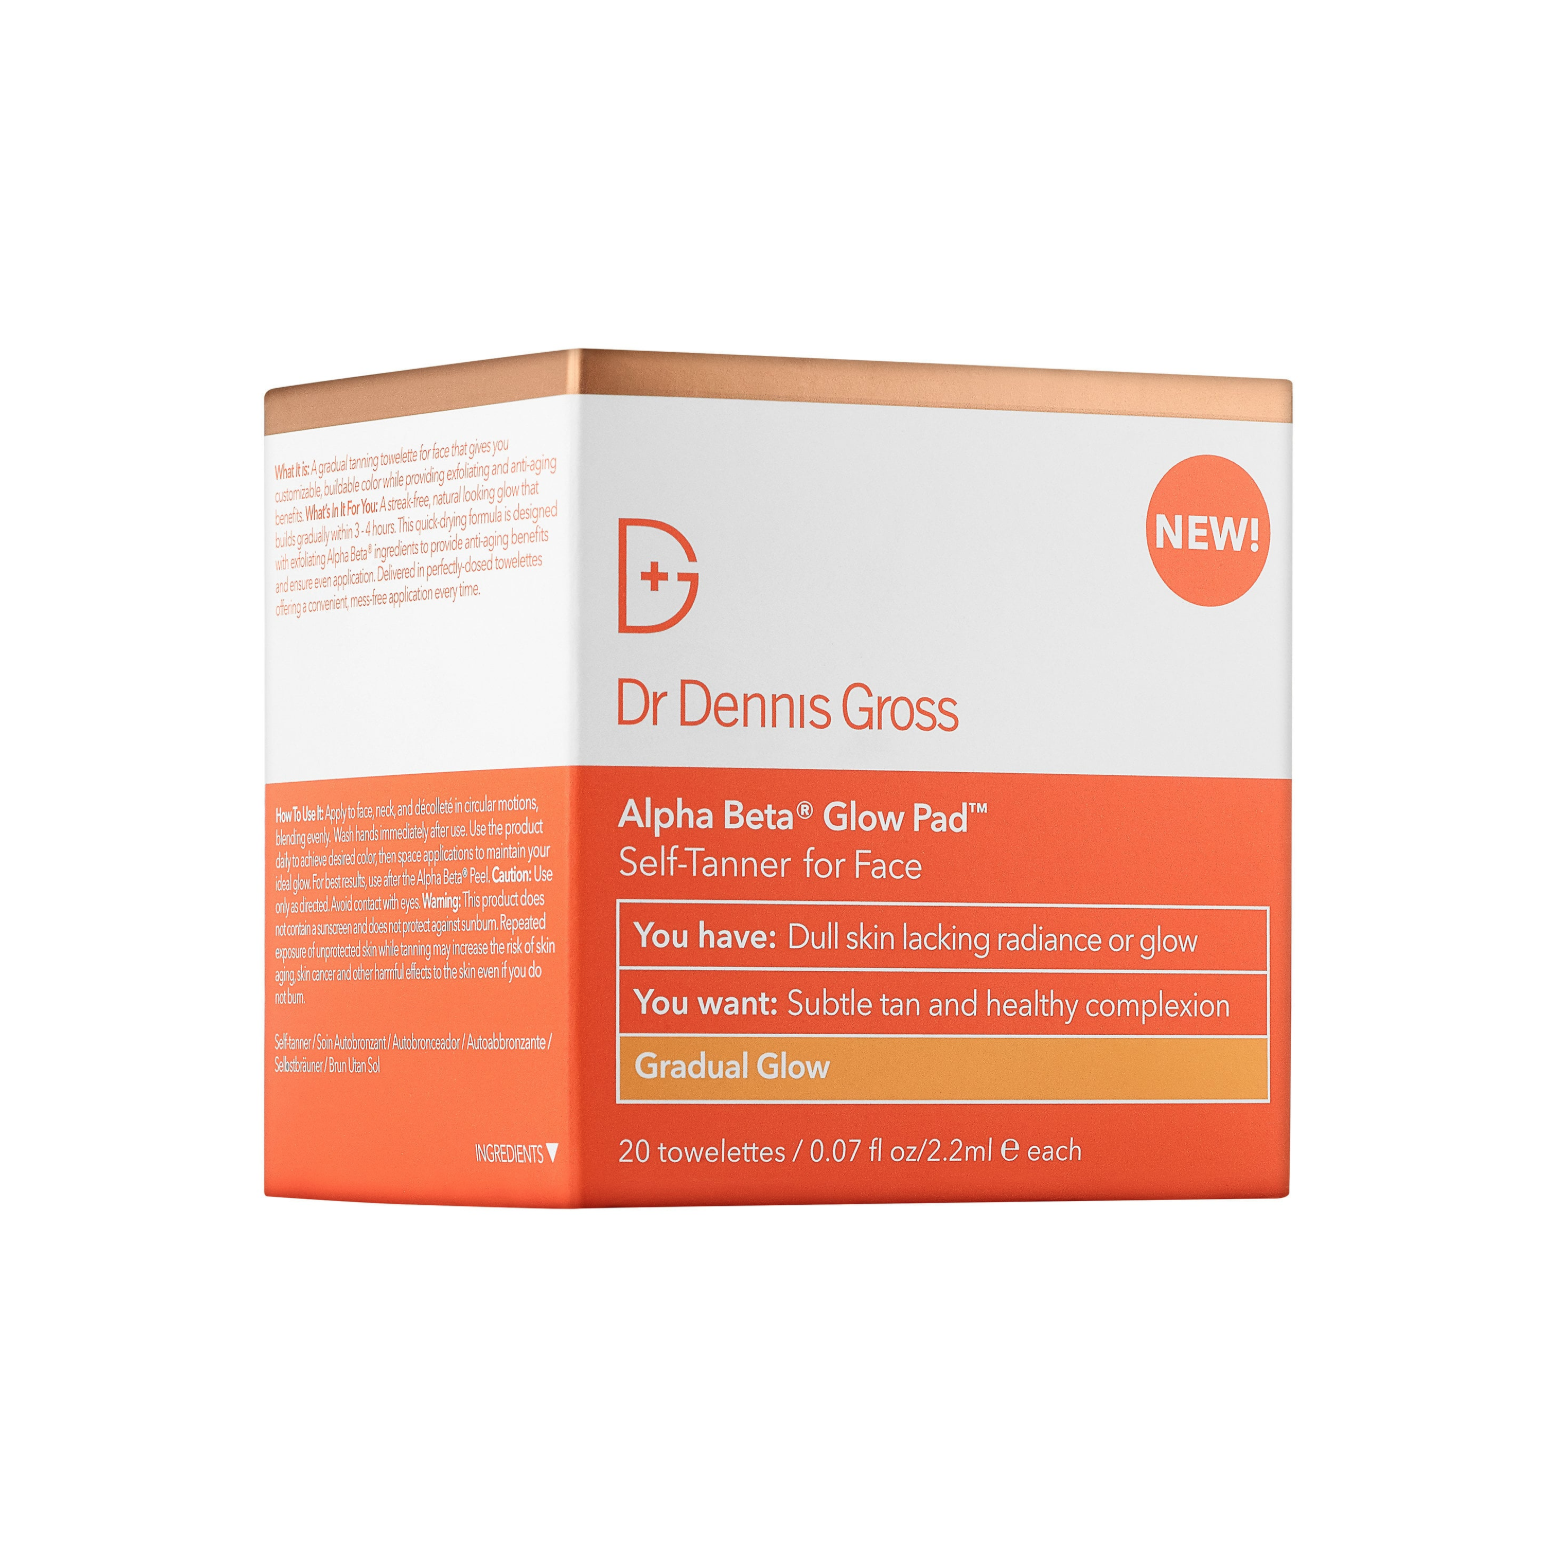 The Face Glow Alpha Beta Gradual Glow Pad Self-Tanner for Face Dr. Dennis Gross Skincare sephora.com $38.00 SHOP NOW Like semi-permanent bronzer, these convenient, quick-drying wipes gradually add color and glow to your face.